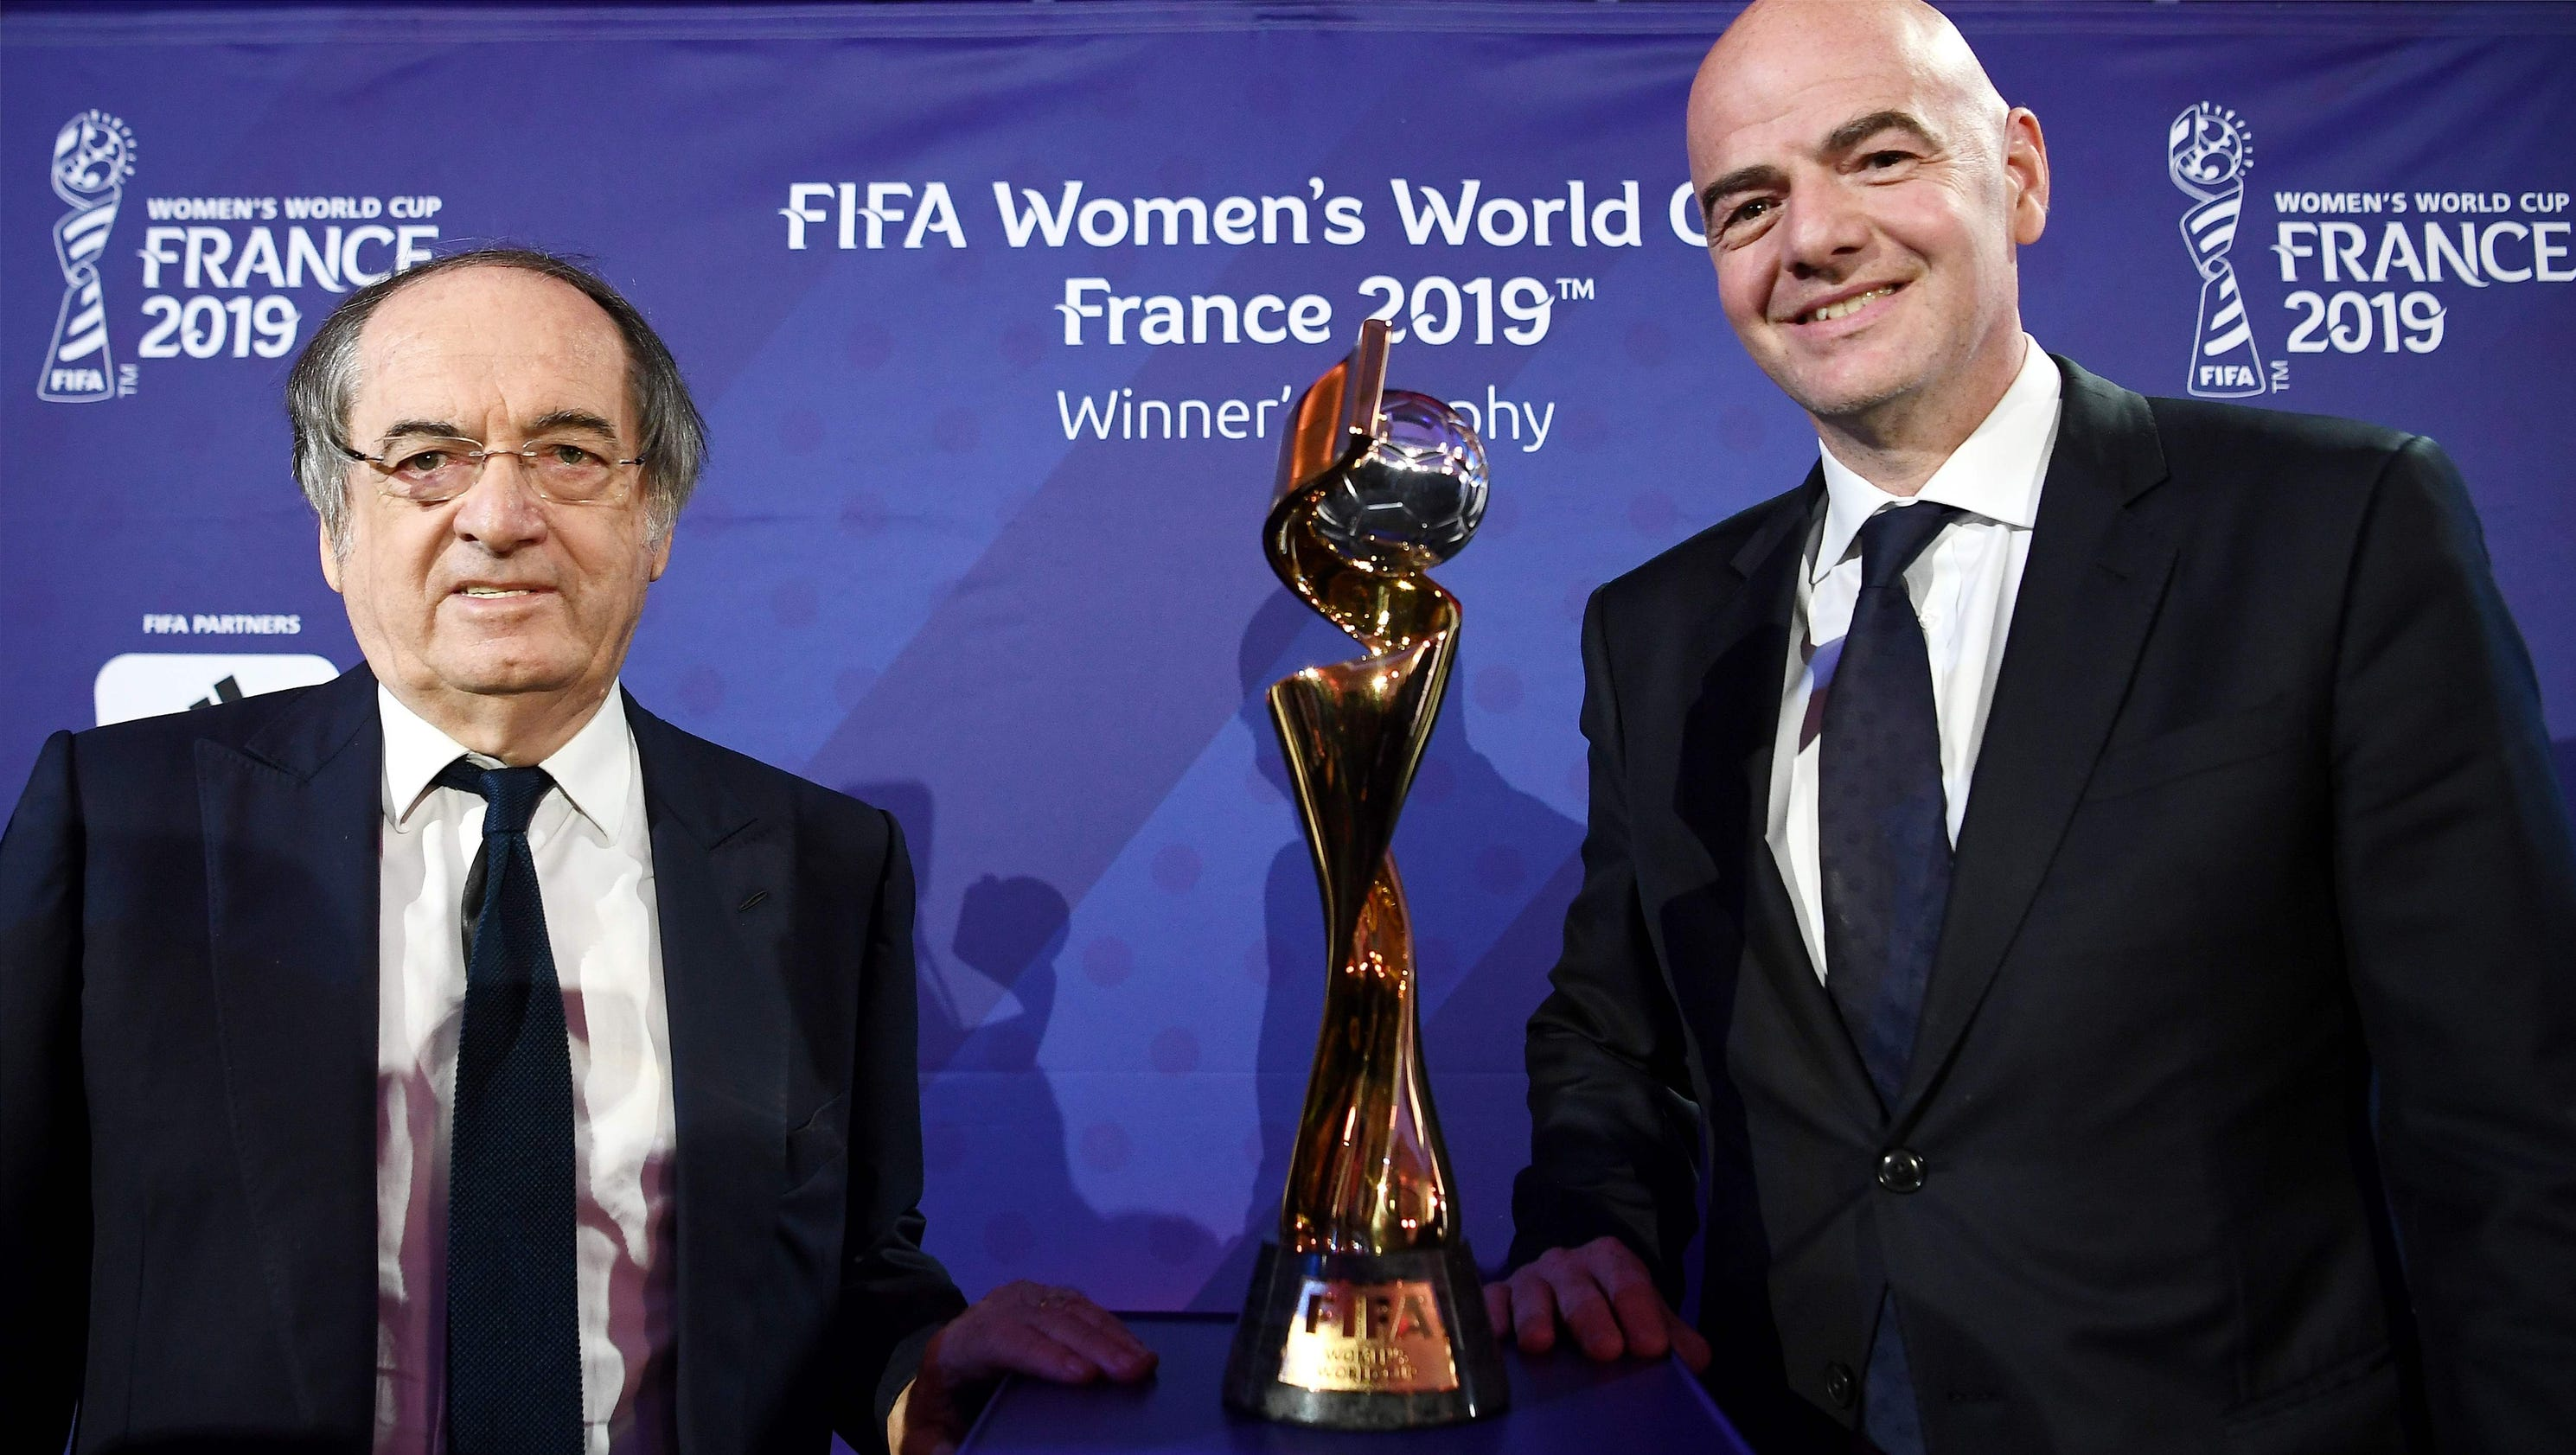 FIFA president sets goal of one billion viewers for 2019 Women's World Cup